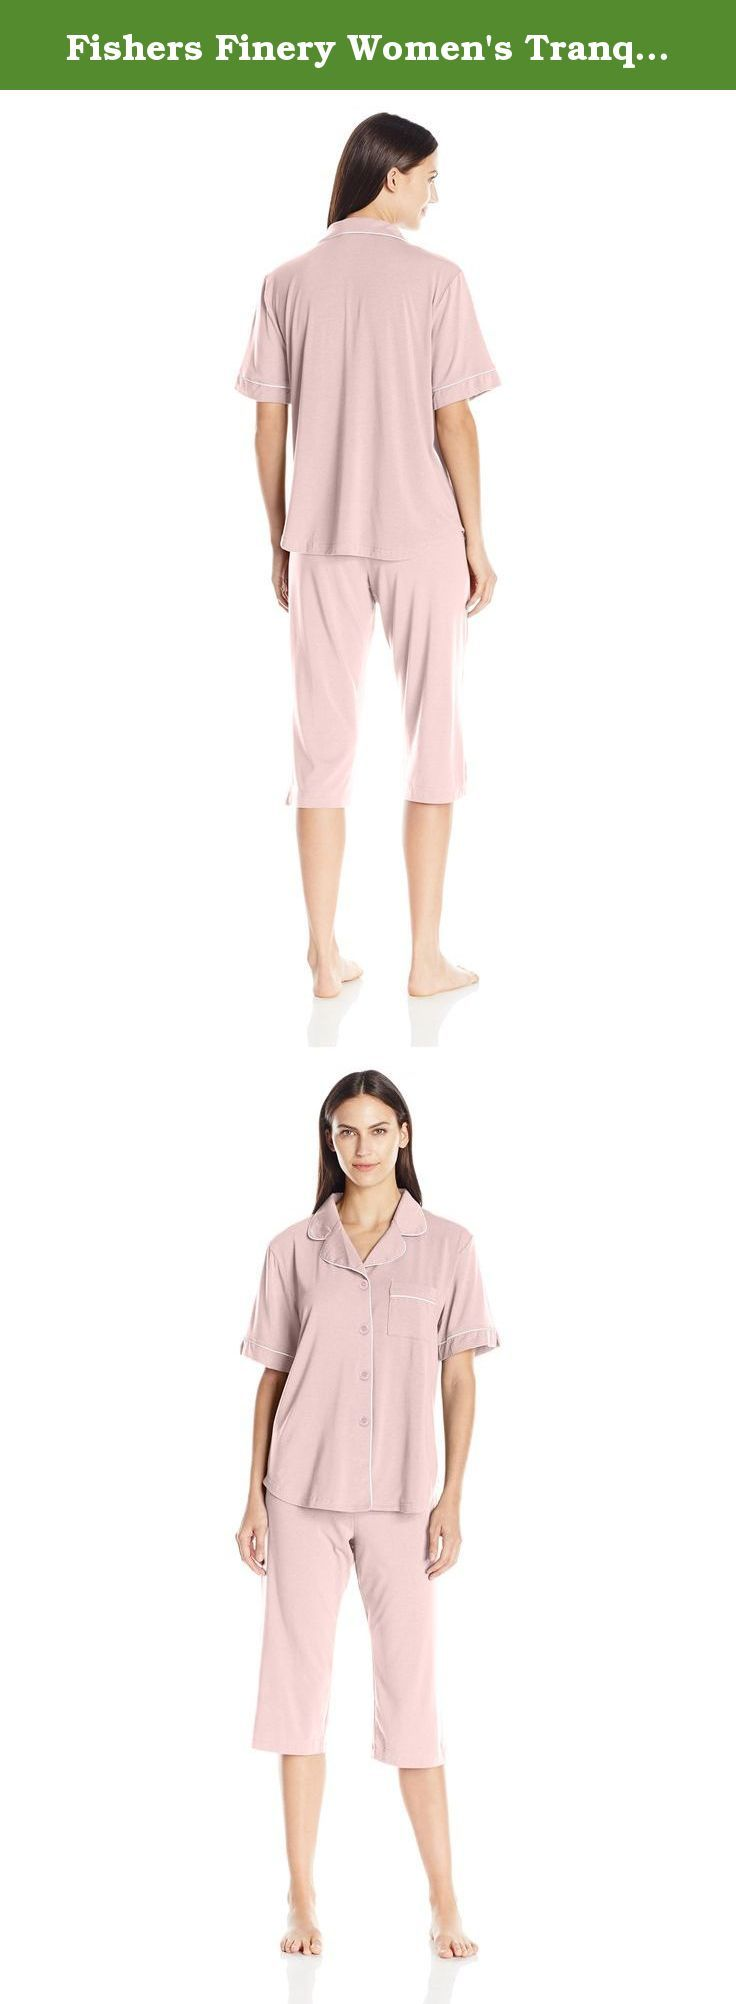 Fishers Finery Women's Tranquil Dreams Capri Pajama Set Comfort Fit, Heavenly Pink, Large. Our short pajama set is meant to be worn when a full pajama set is impractical or too warm. This set is the ticket on those nights when air conditioning is not available or practical. This pajama provides enough coverage for a nighttime walk to the bathroom or refrigerator as well as a reasonable alternative to a nightgown. The natural wicking capacity keeps the wearer cool and comfortable on the...